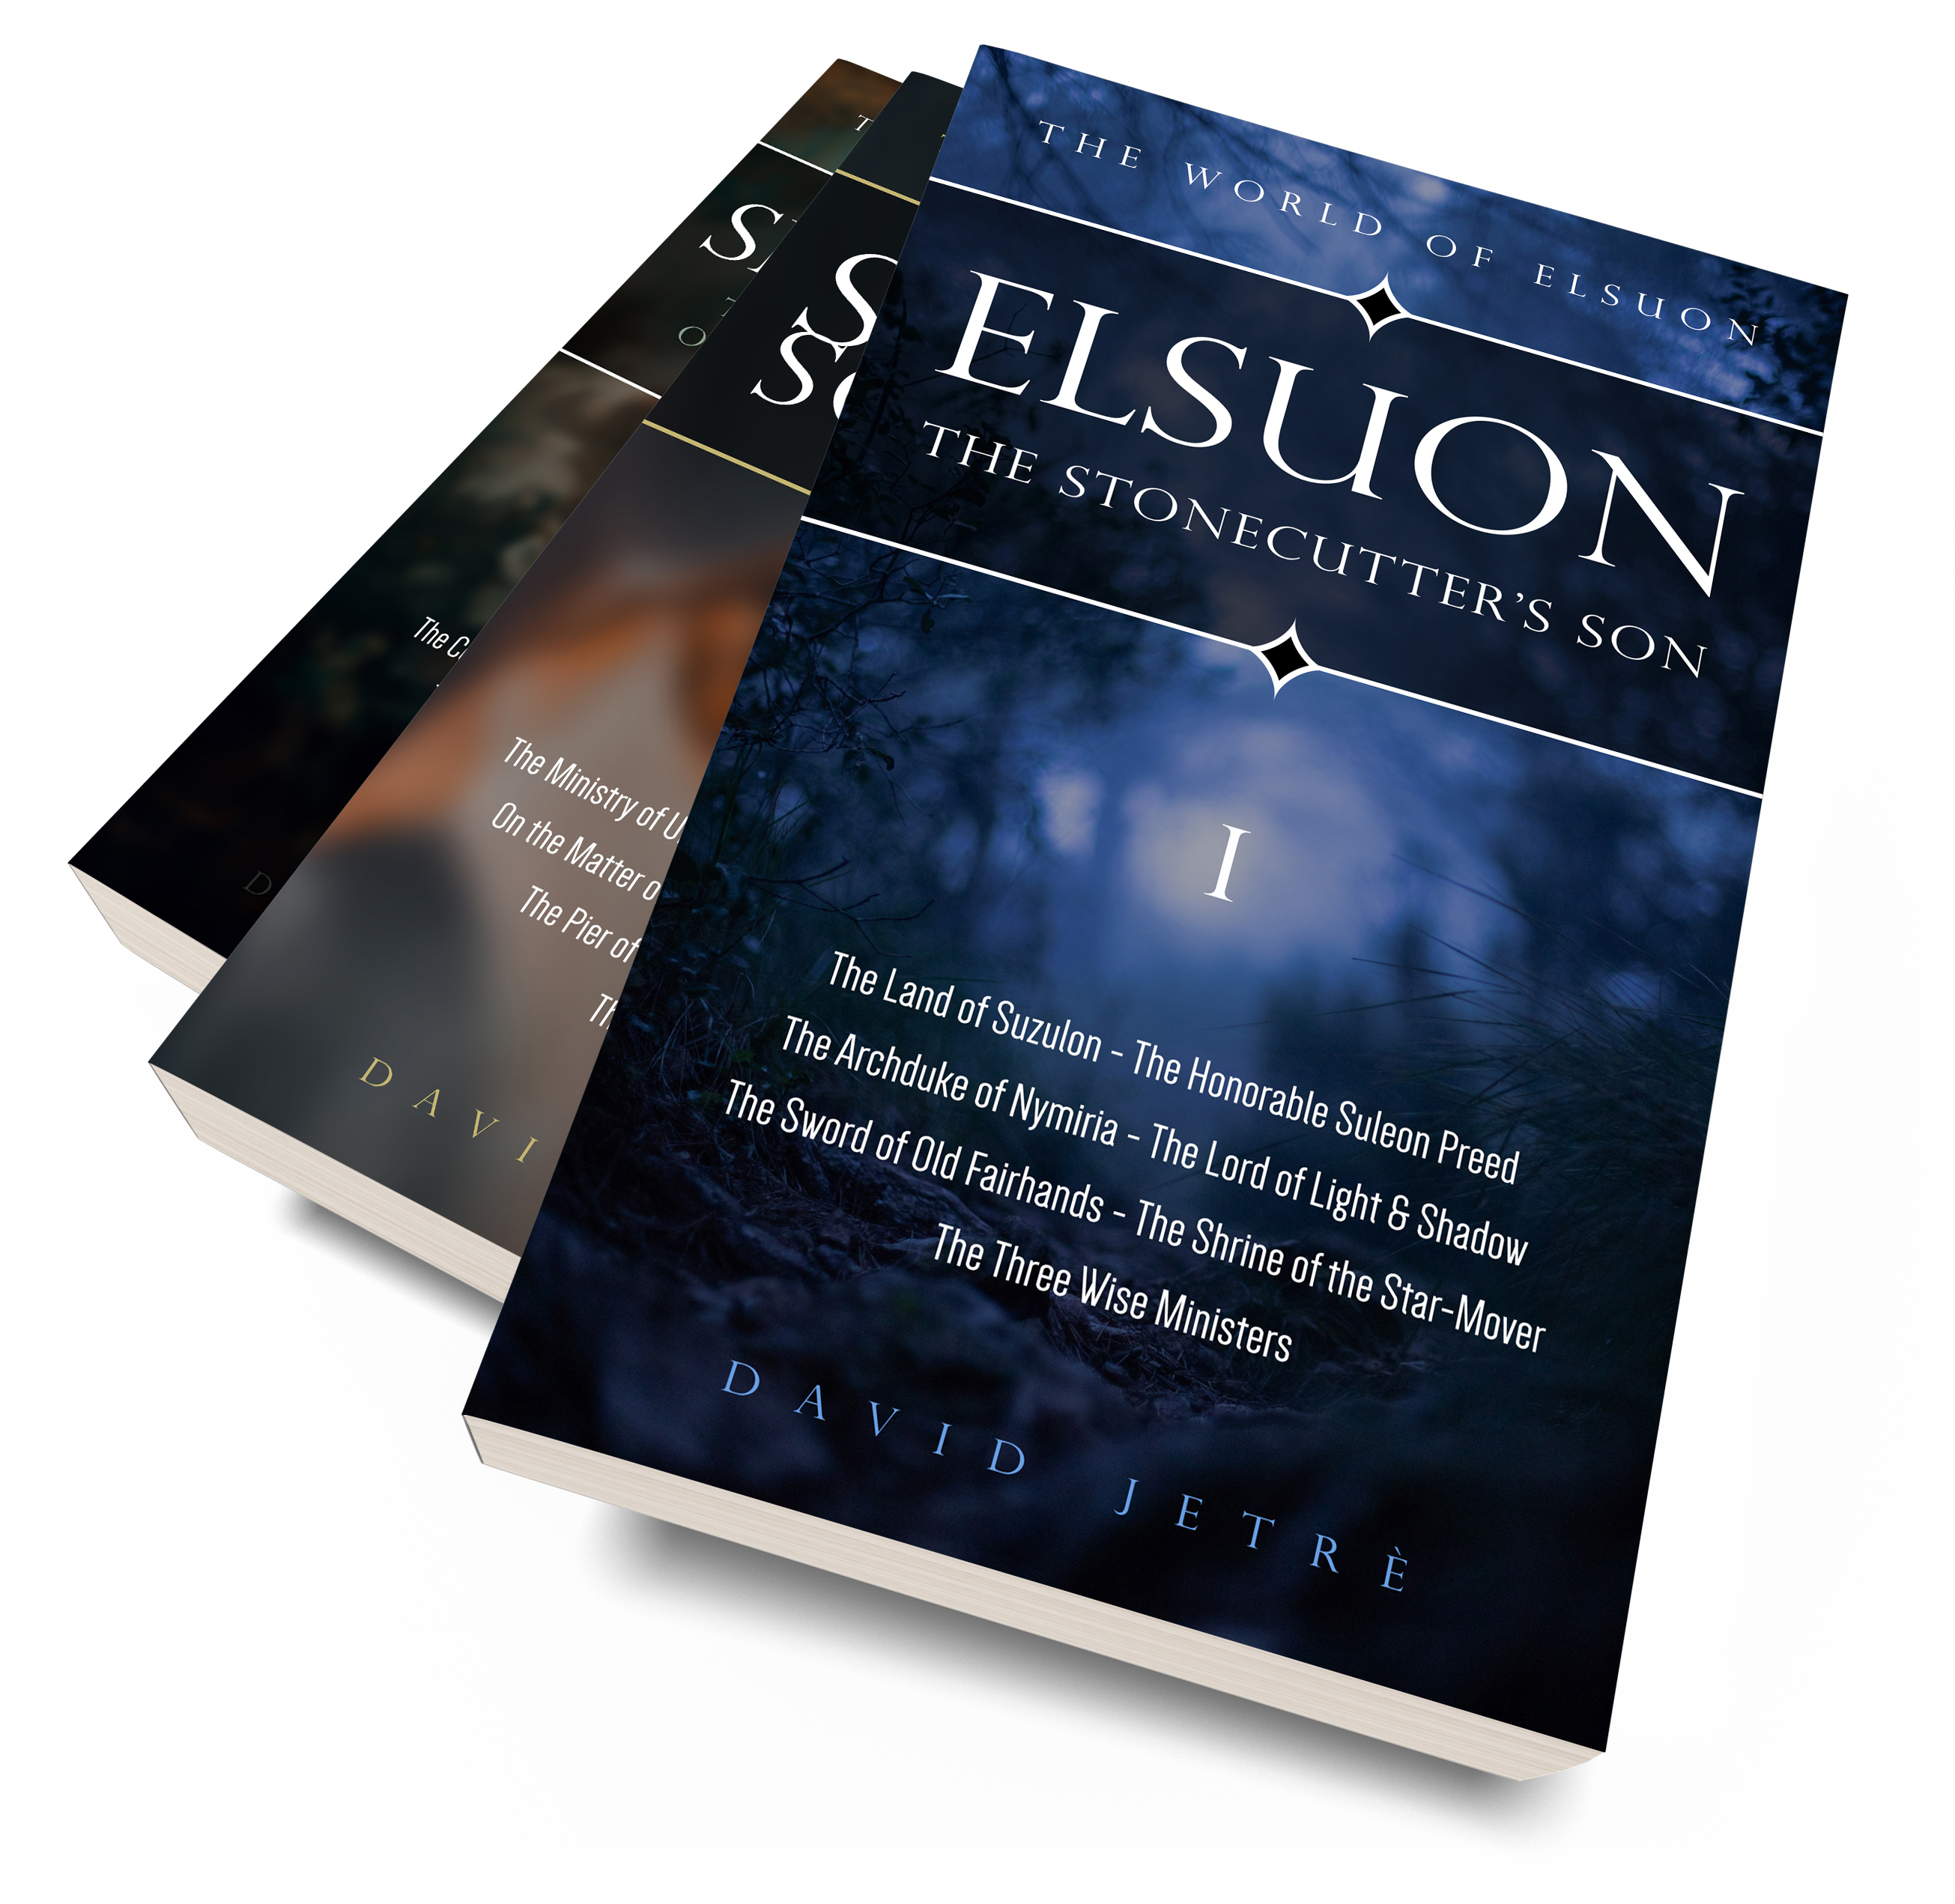 The World of Elsuon Stack